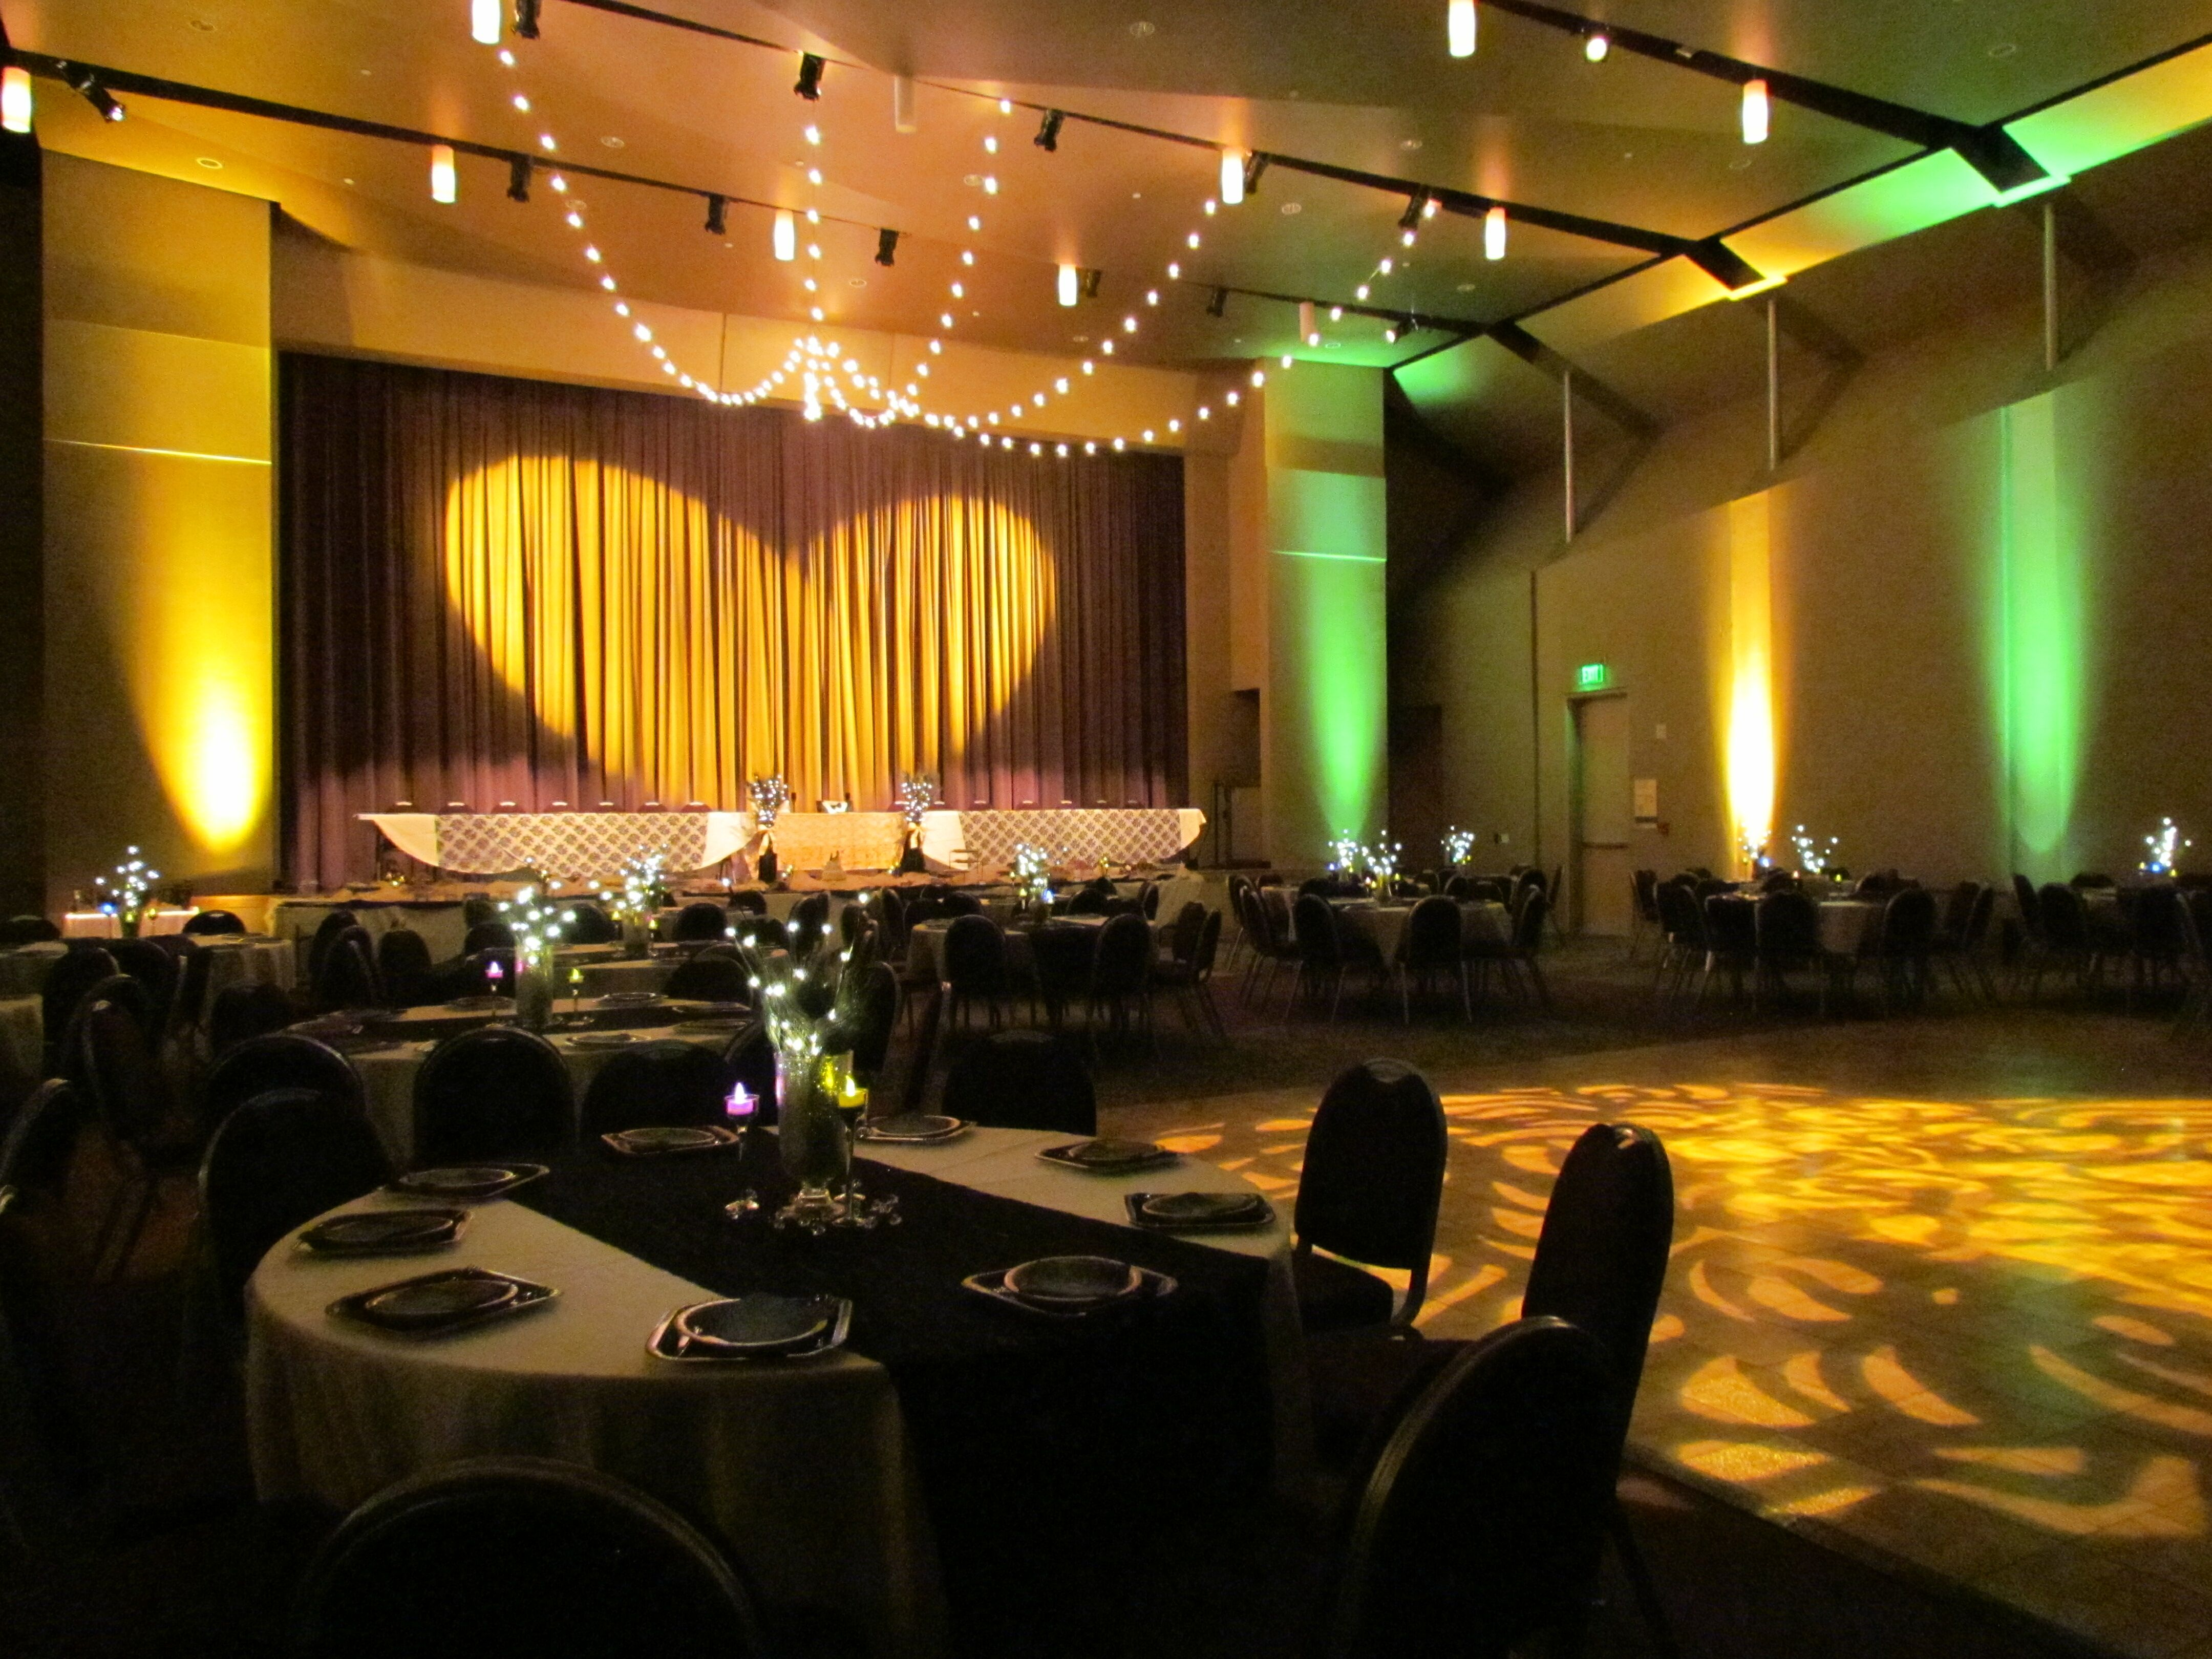 Wedding Venues in Mountain View, CA - The Knot